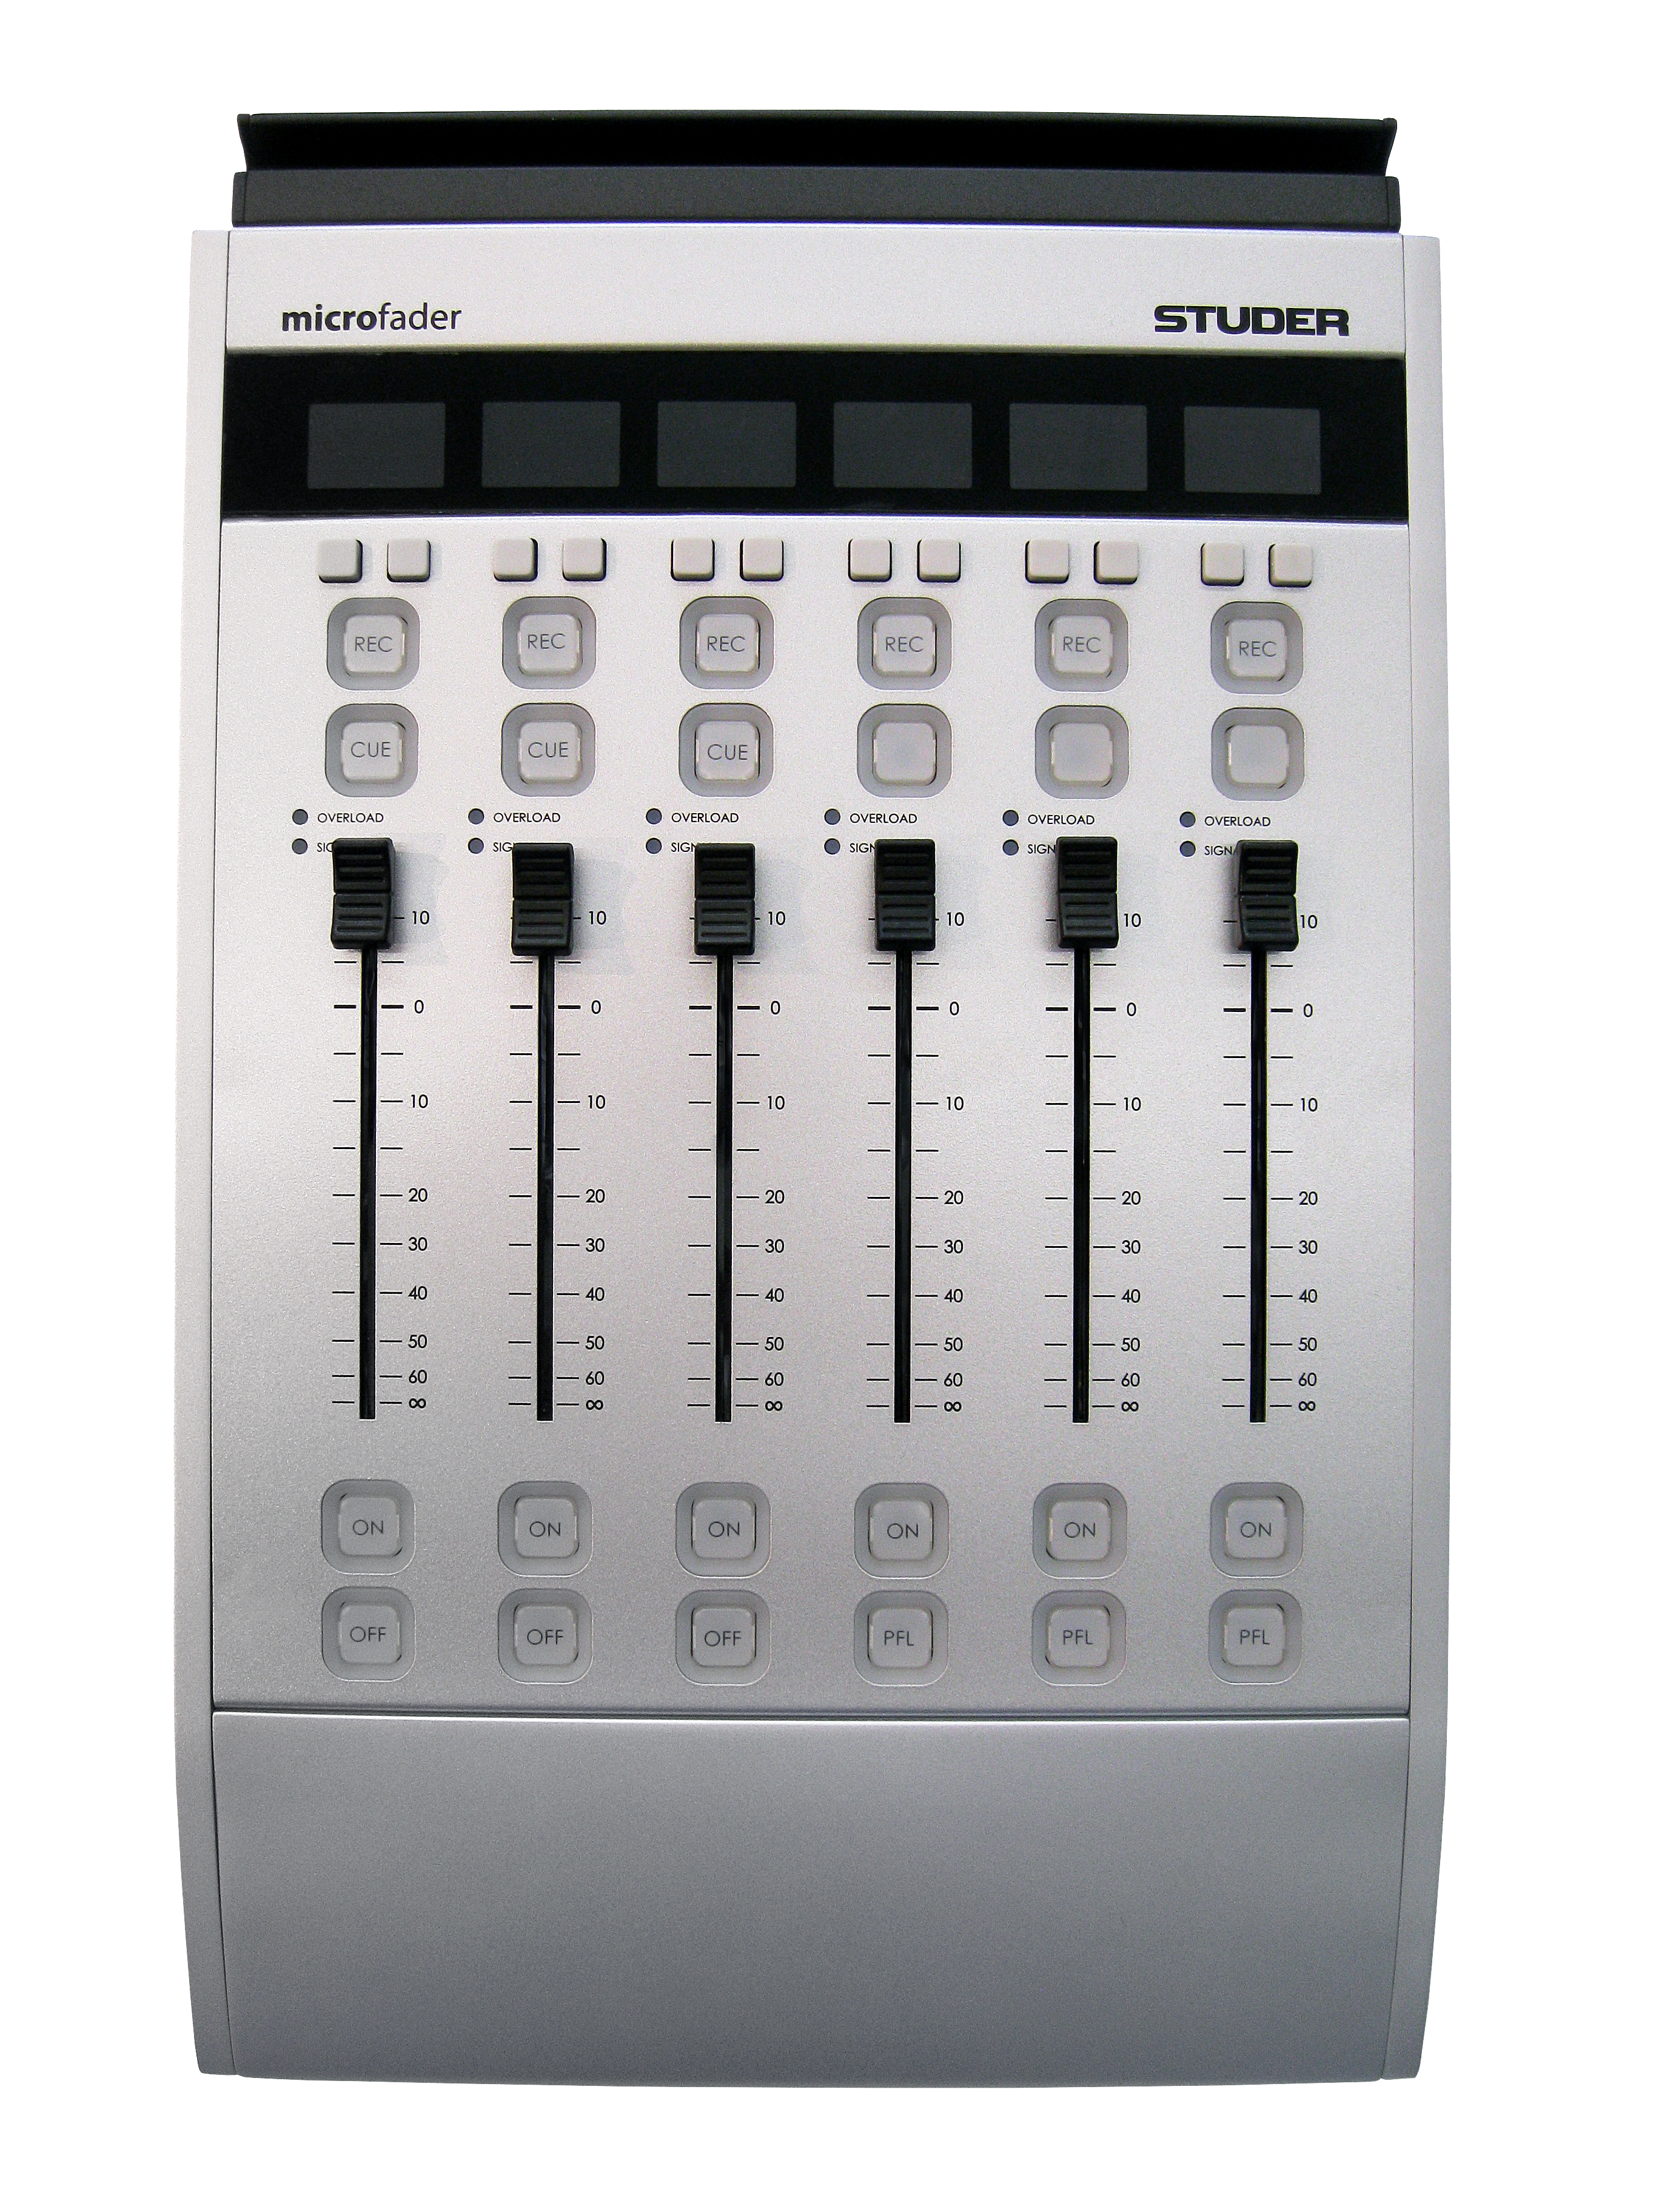 micro series studer professional mixing consoles. Black Bedroom Furniture Sets. Home Design Ideas